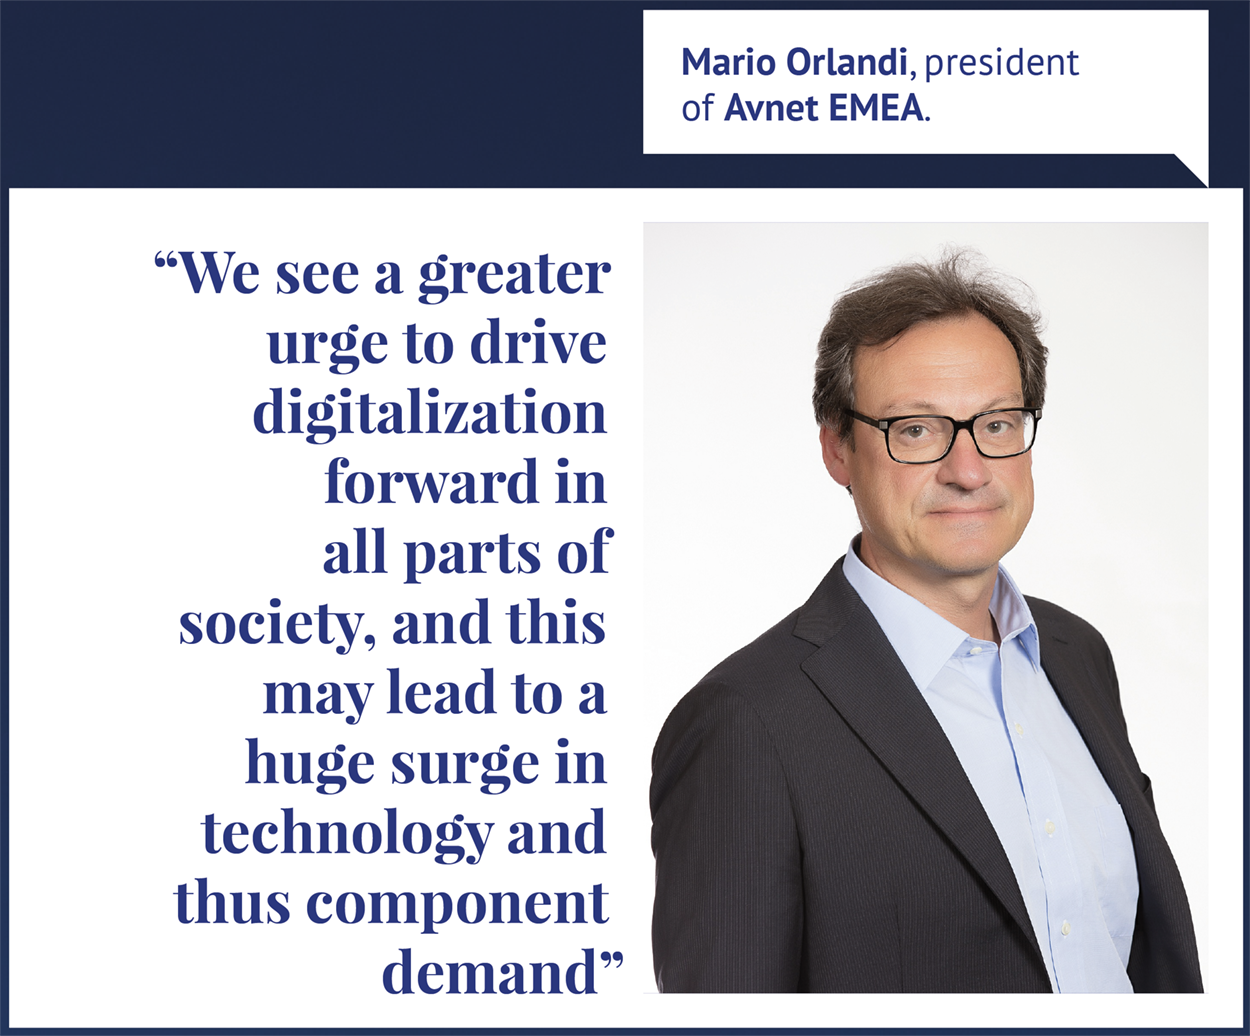 """Mario Orlandi - """"We see a greater urge to drive digitalization forward in all parts of society, and this may lead to a huge surge in technology and thus component demand"""""""